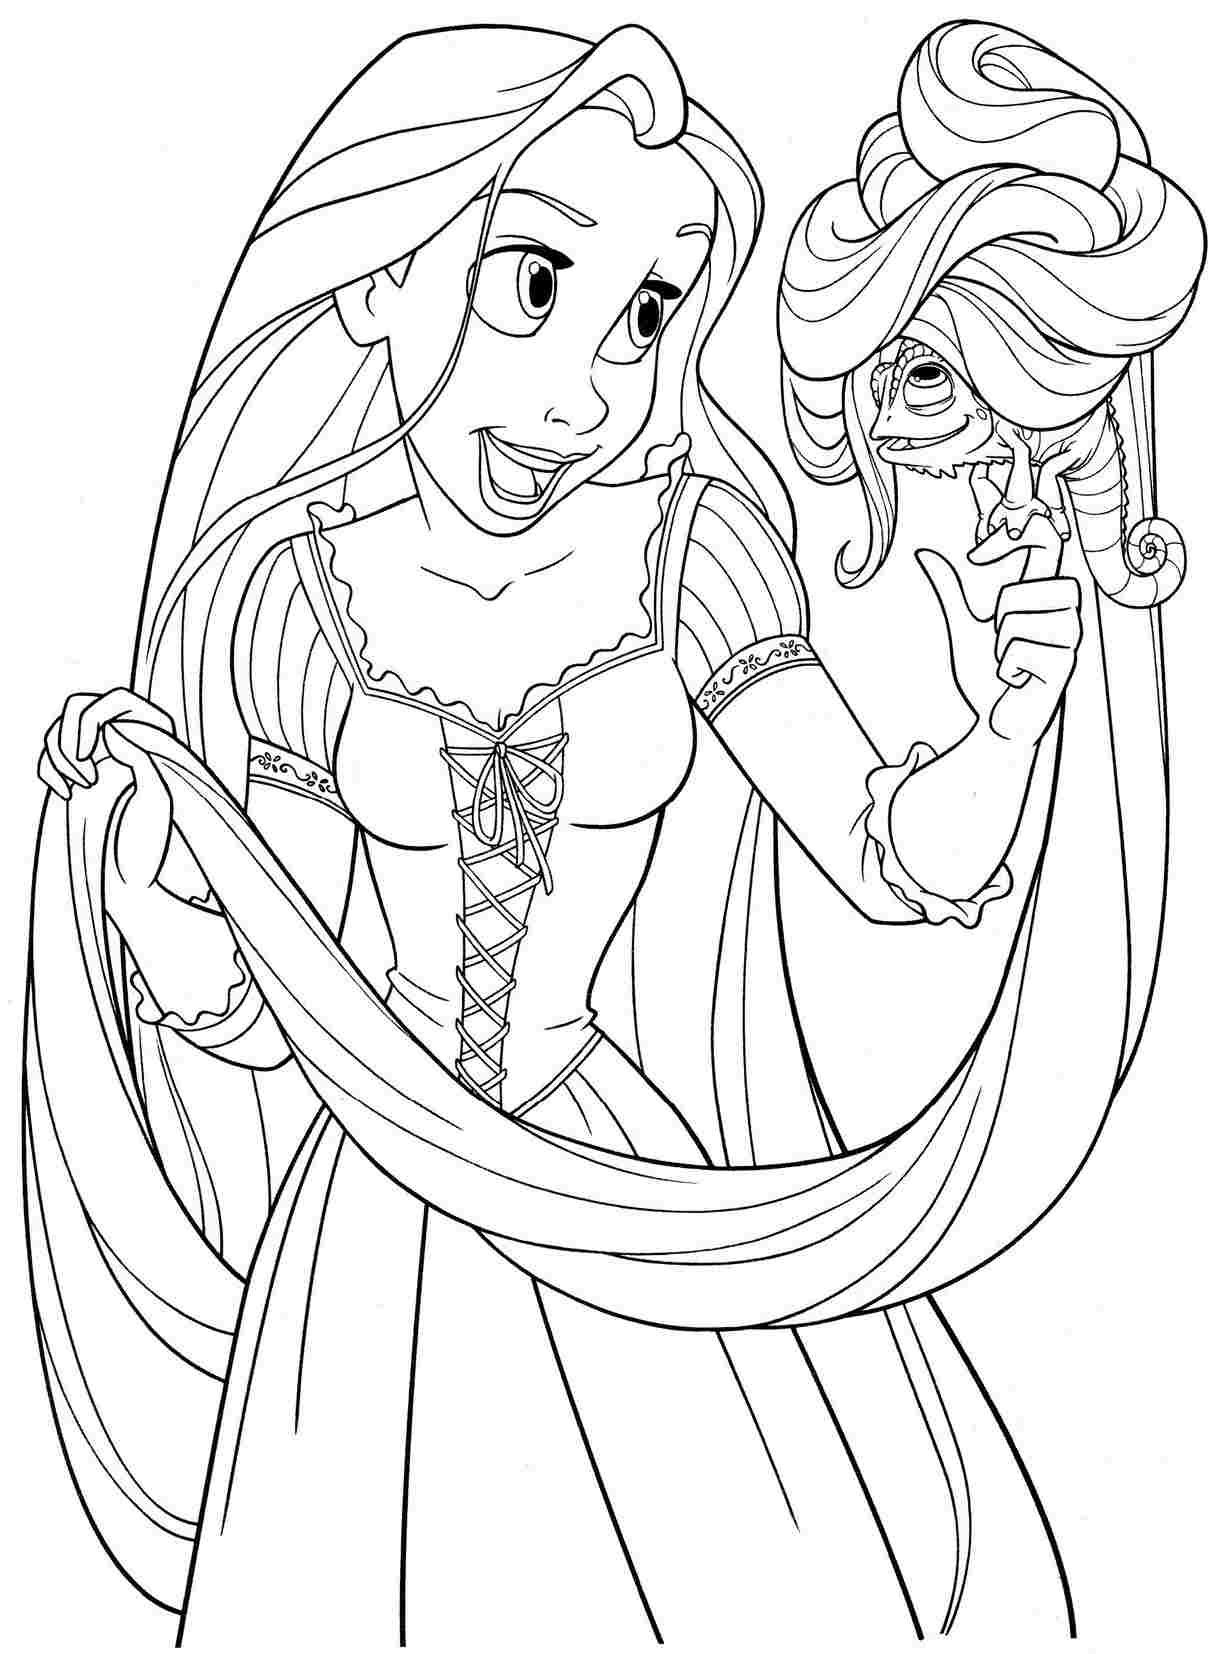 colouring pages for disney princesses disney princess coloring pages minister coloring for disney colouring pages princesses